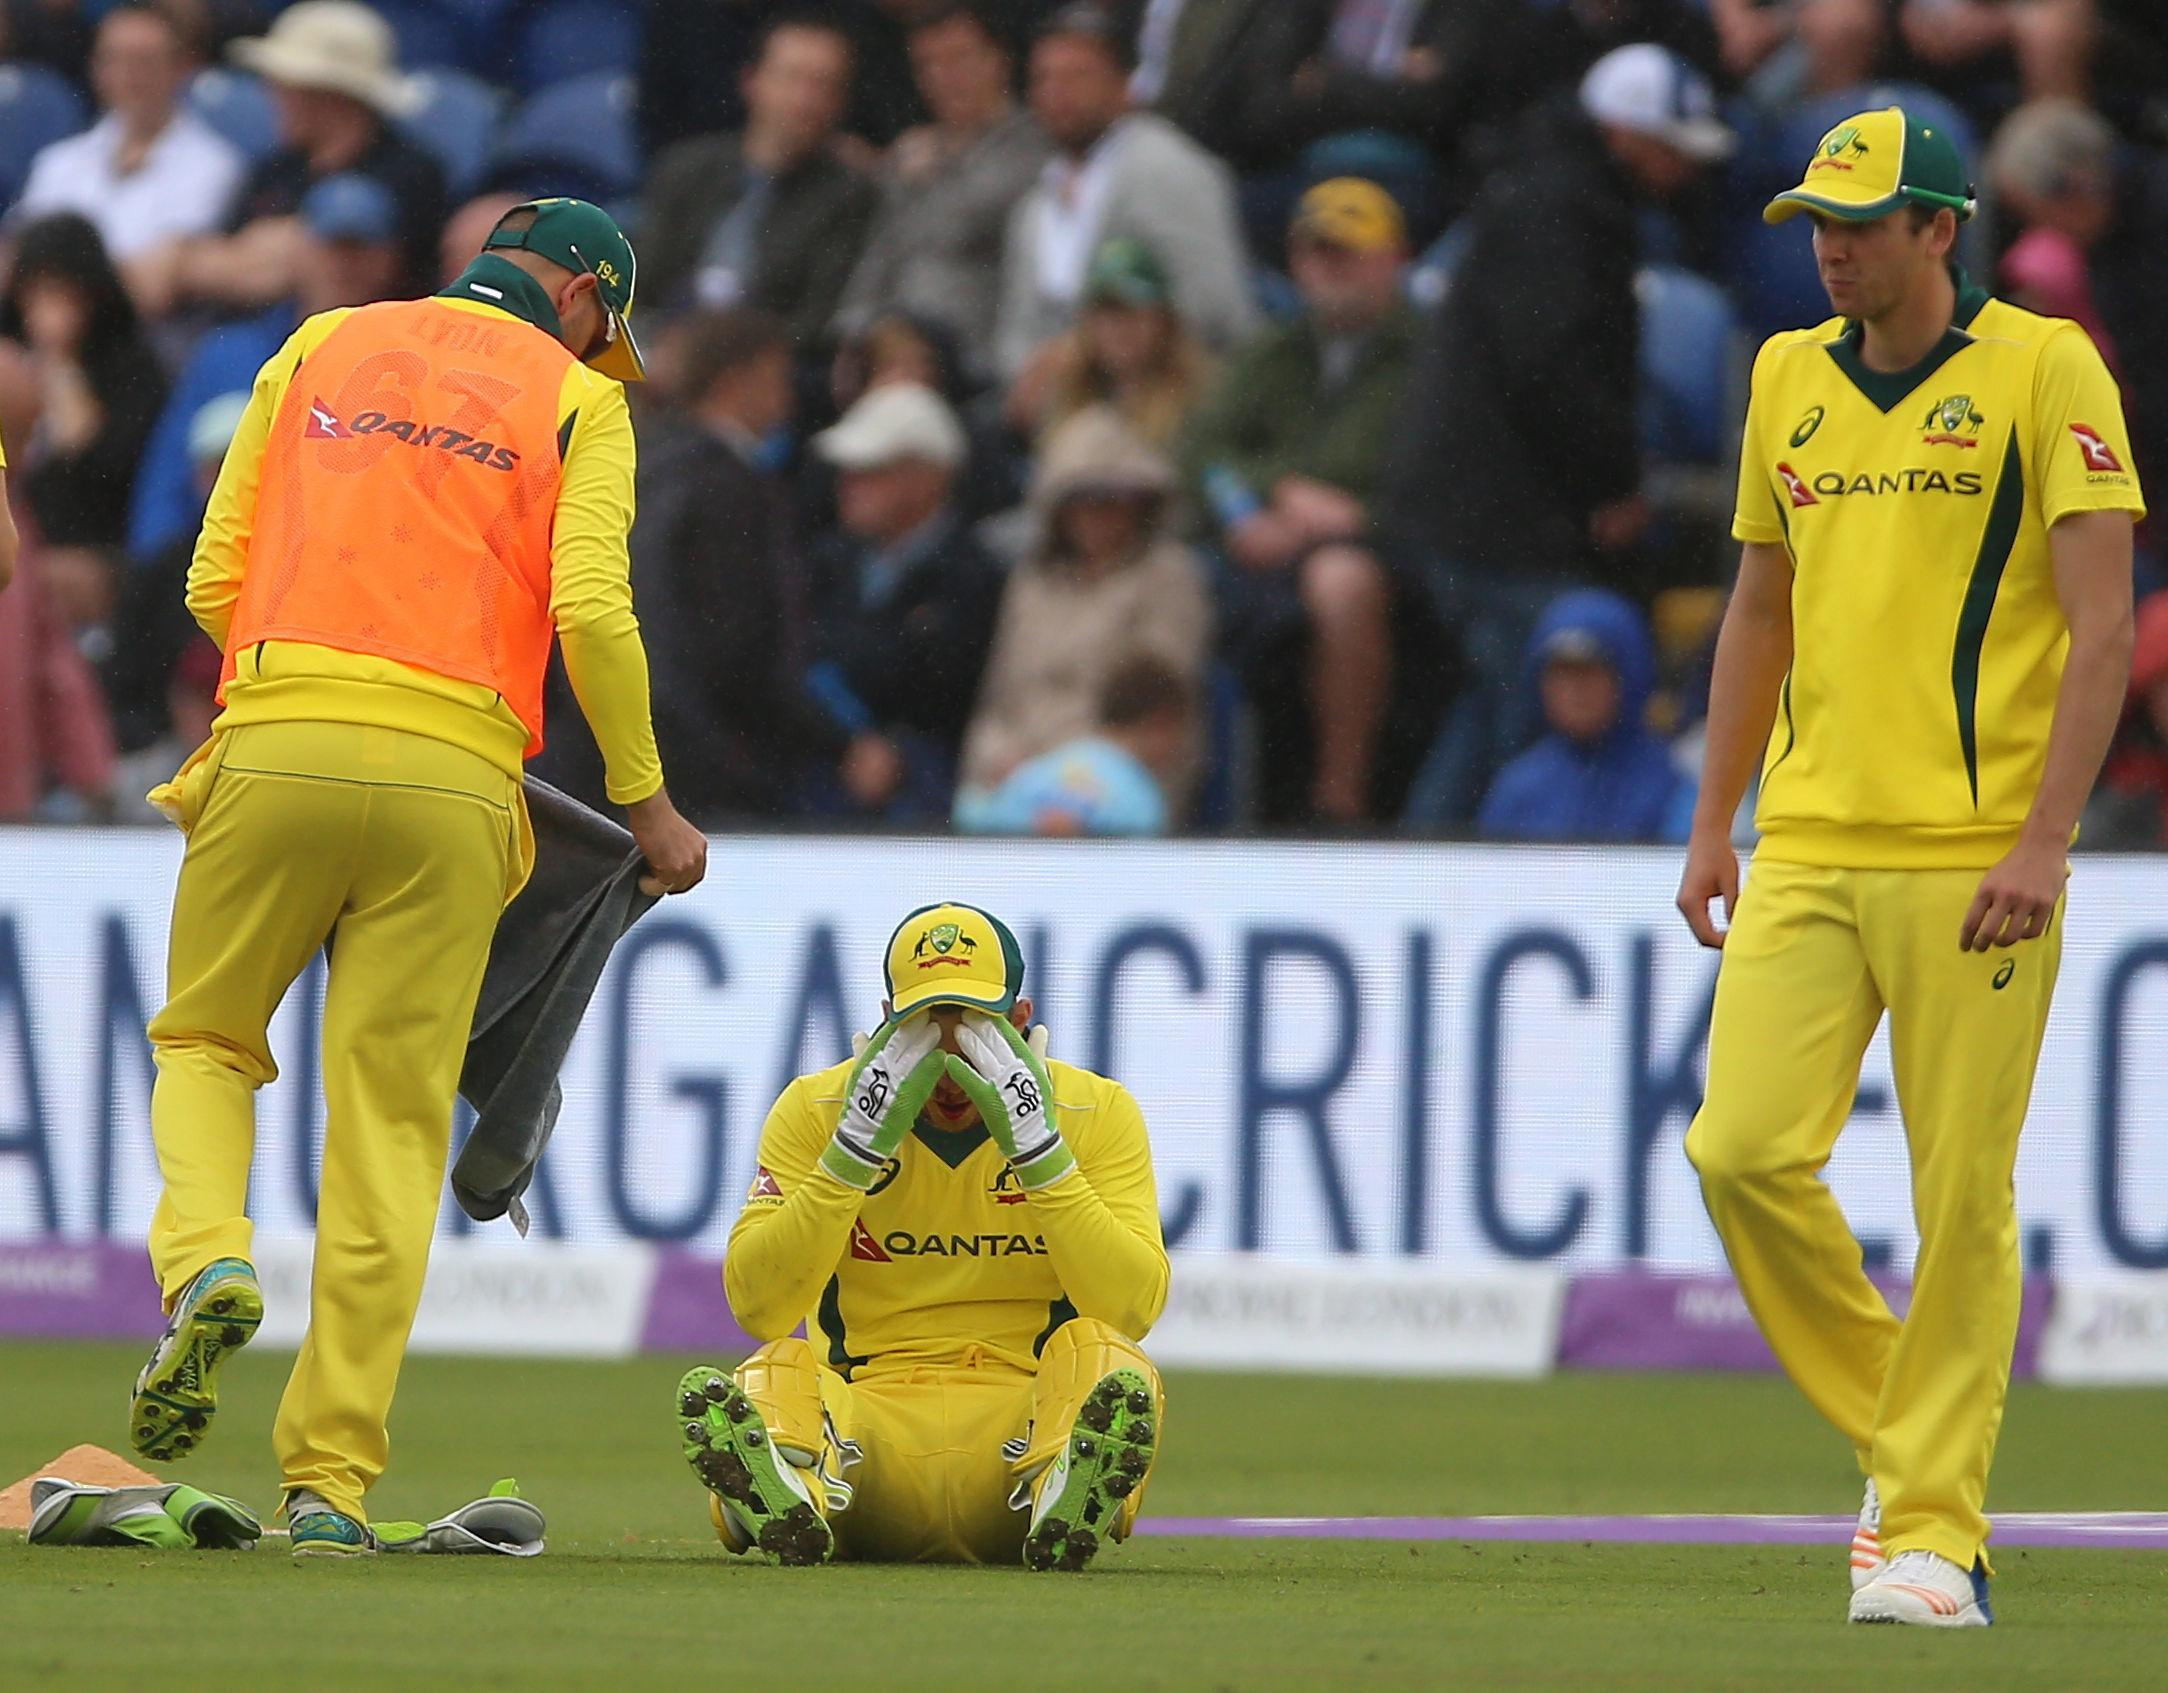 Australia captain Tim Paine had a tooth pulled by a physio live on air